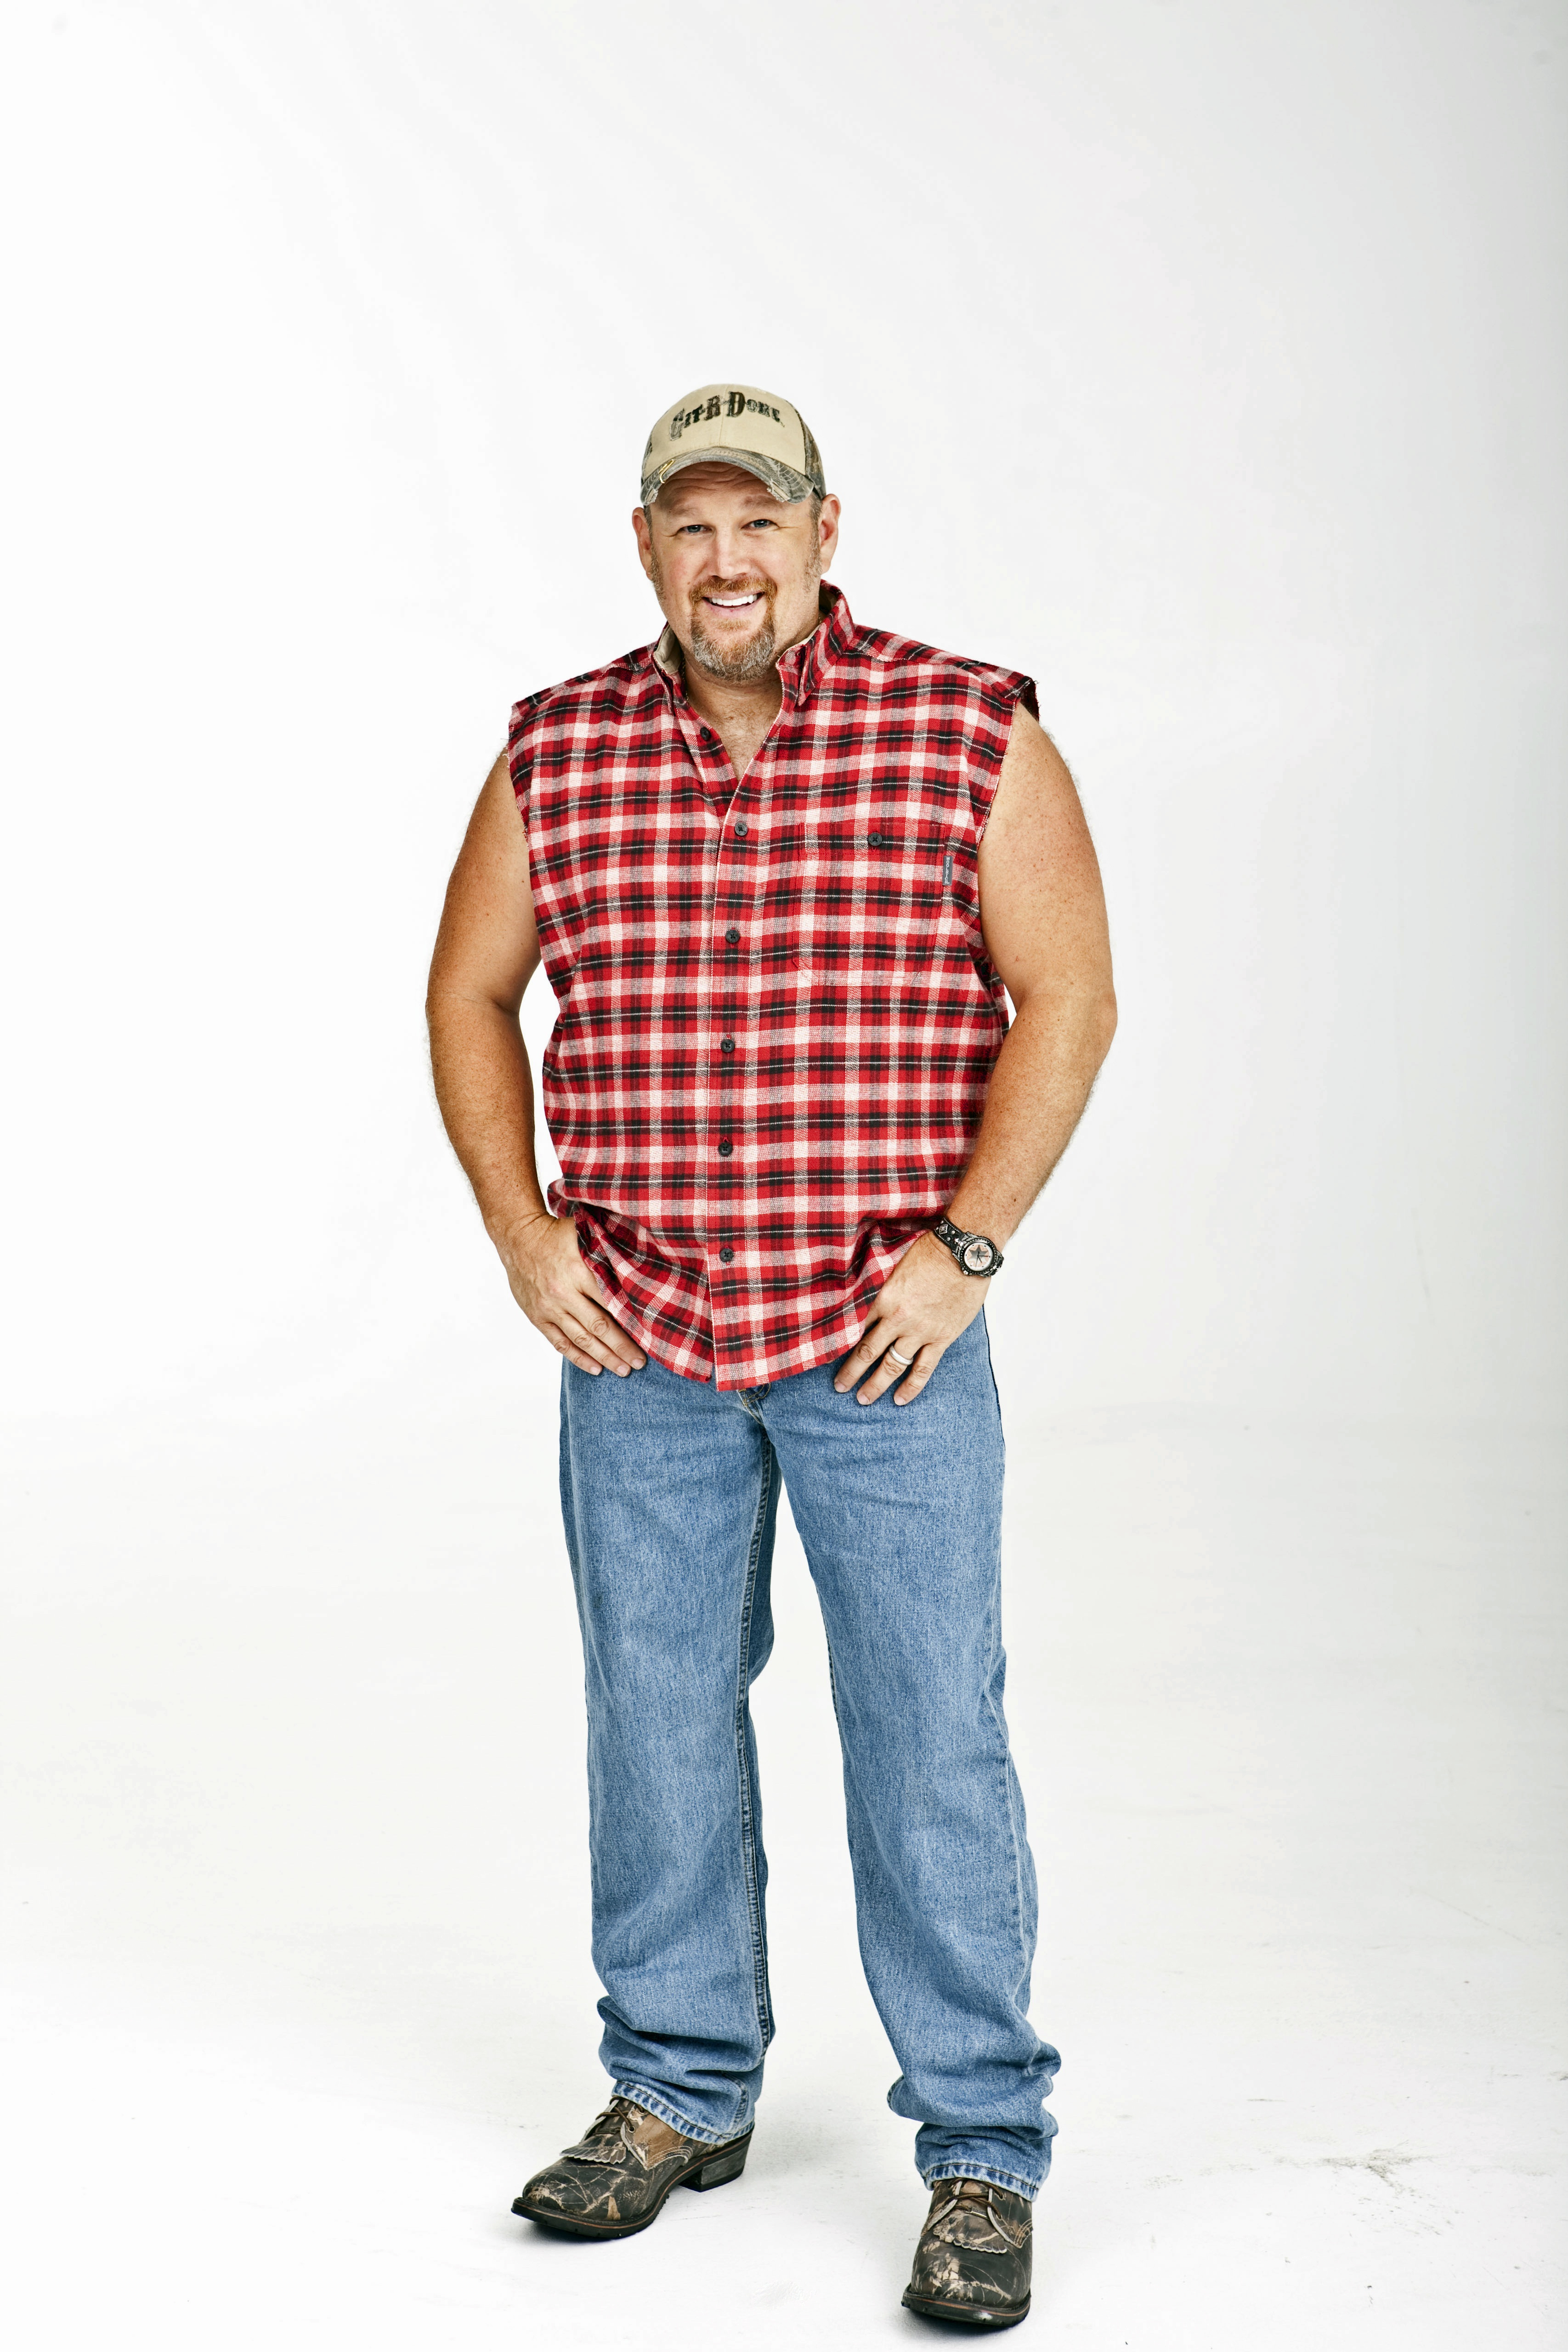 larry the cable guy health inspector